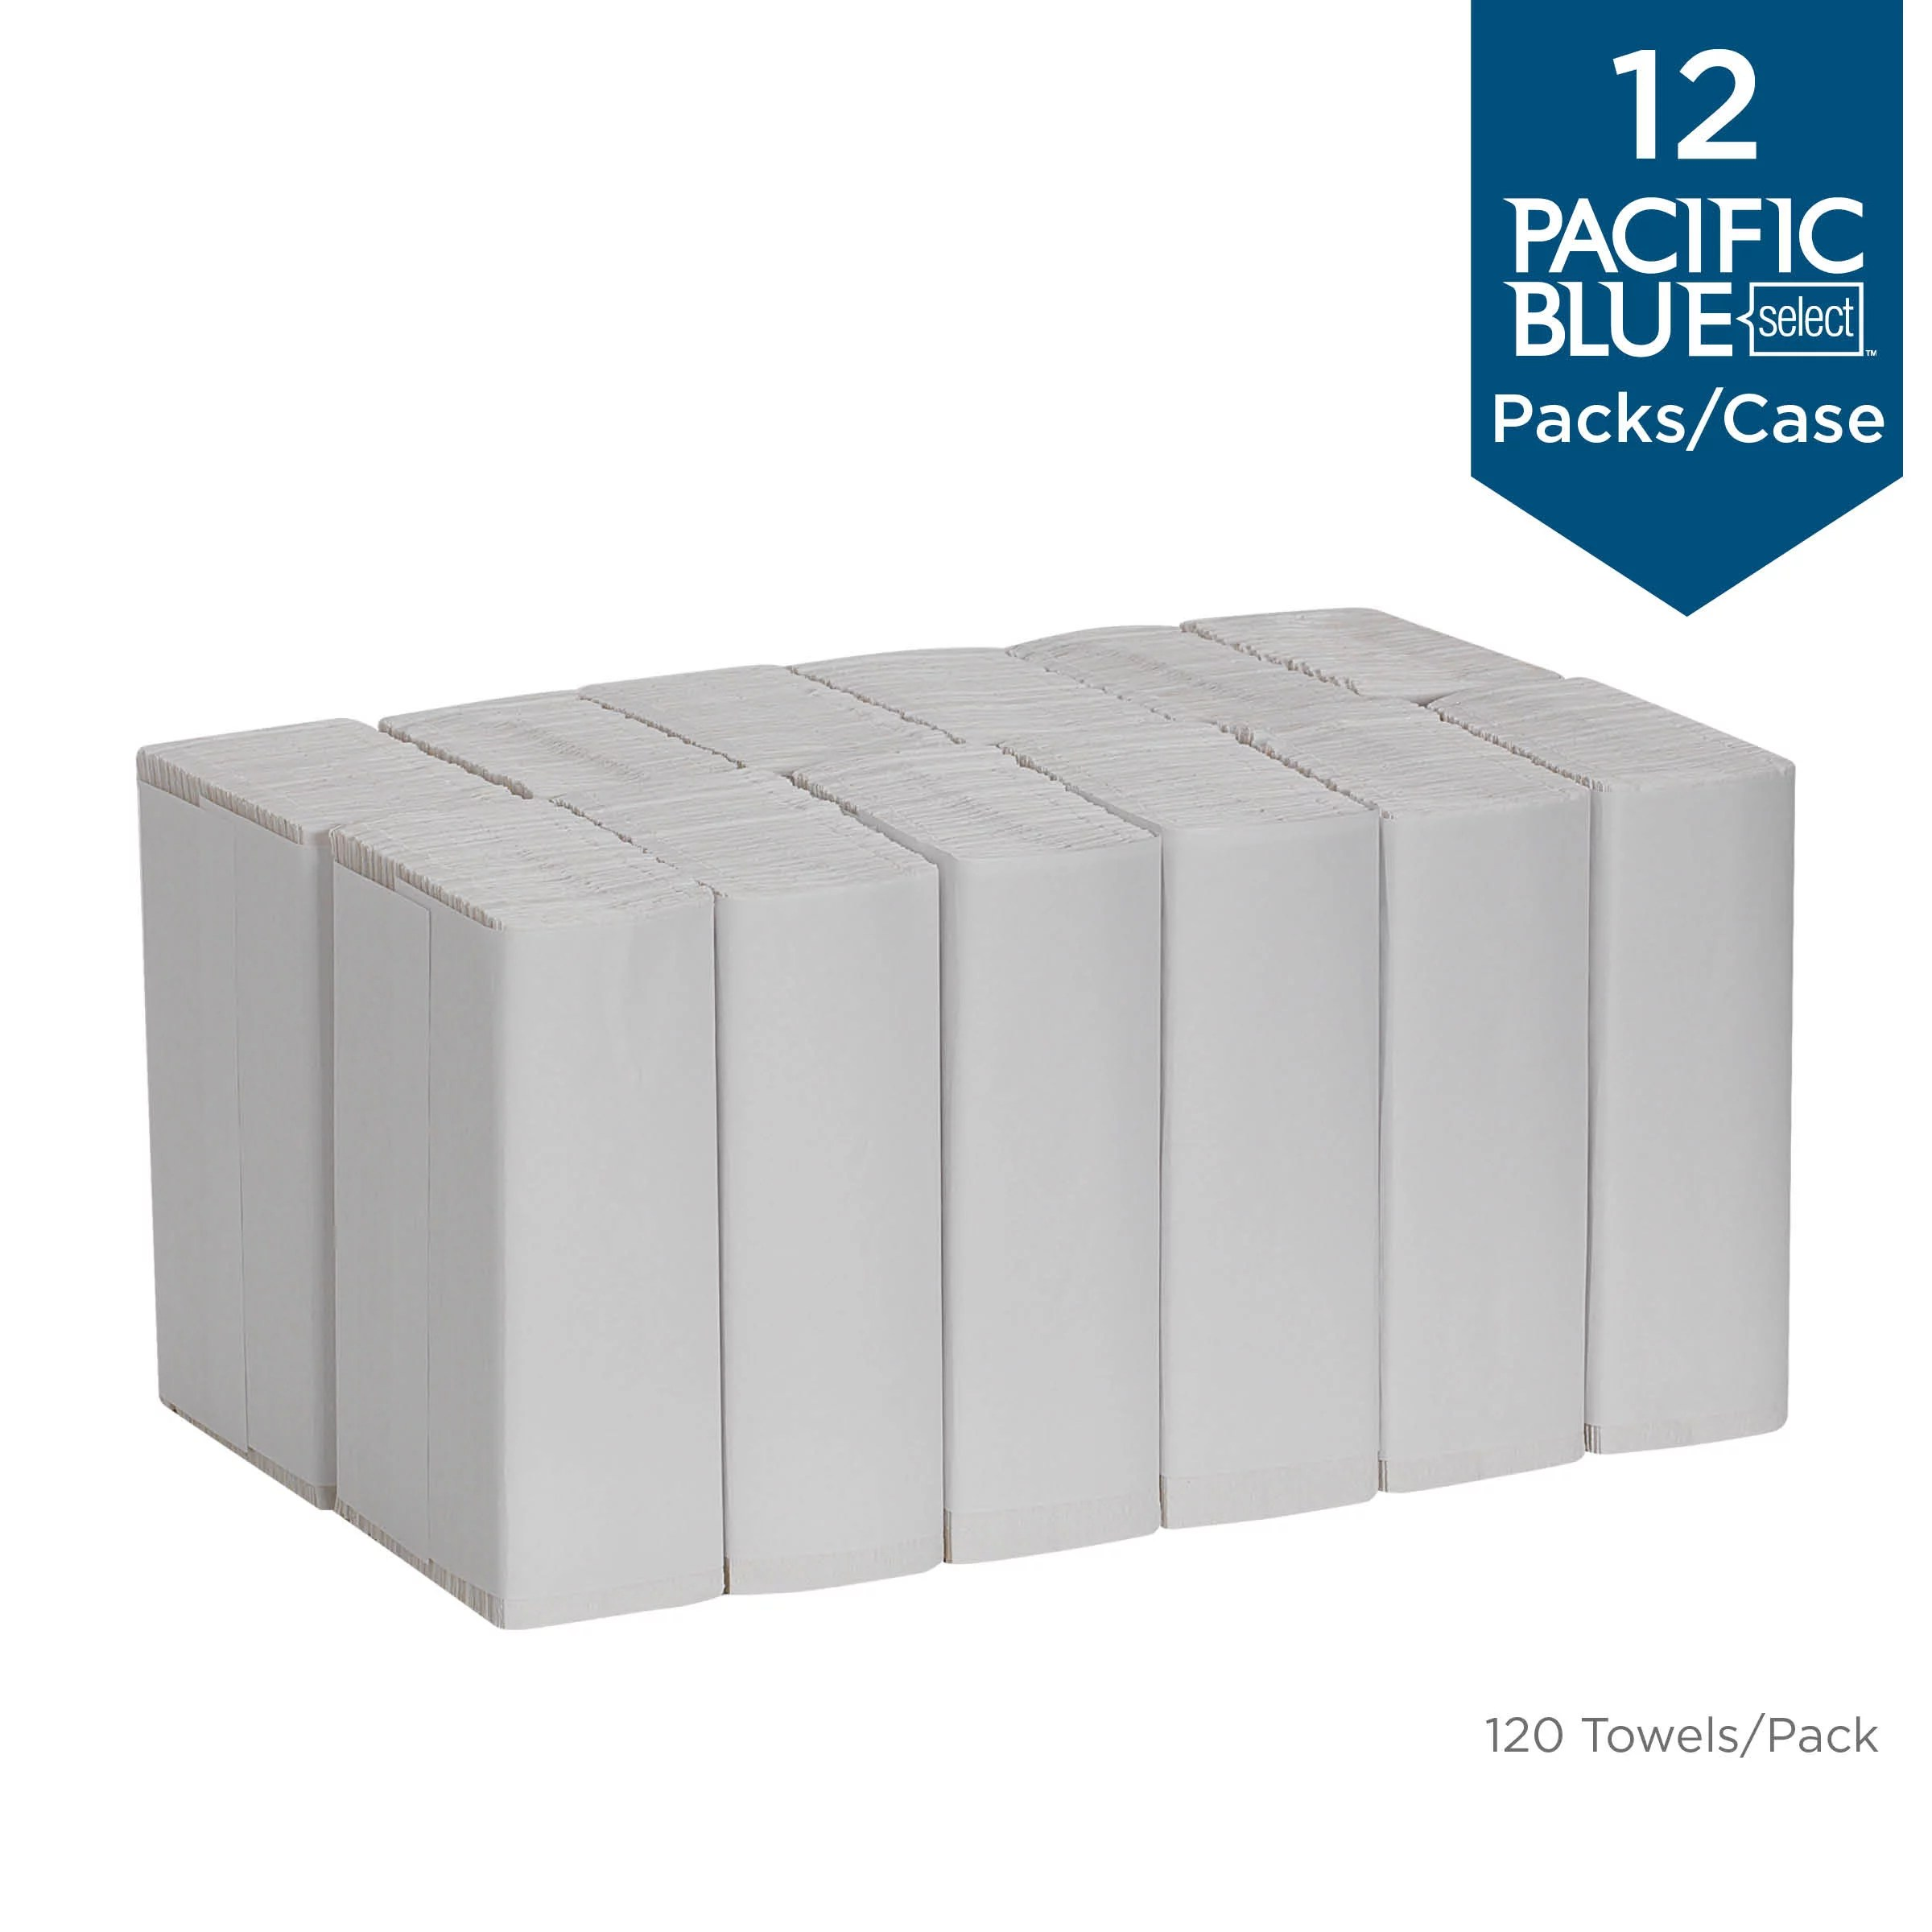 Georgia-Pacific Pacific Blue Select™ 2-Ply C-Fold Paper Towels, Centerfold Towels, 23000, 120 Towels per Pack, 12 Packs per Case